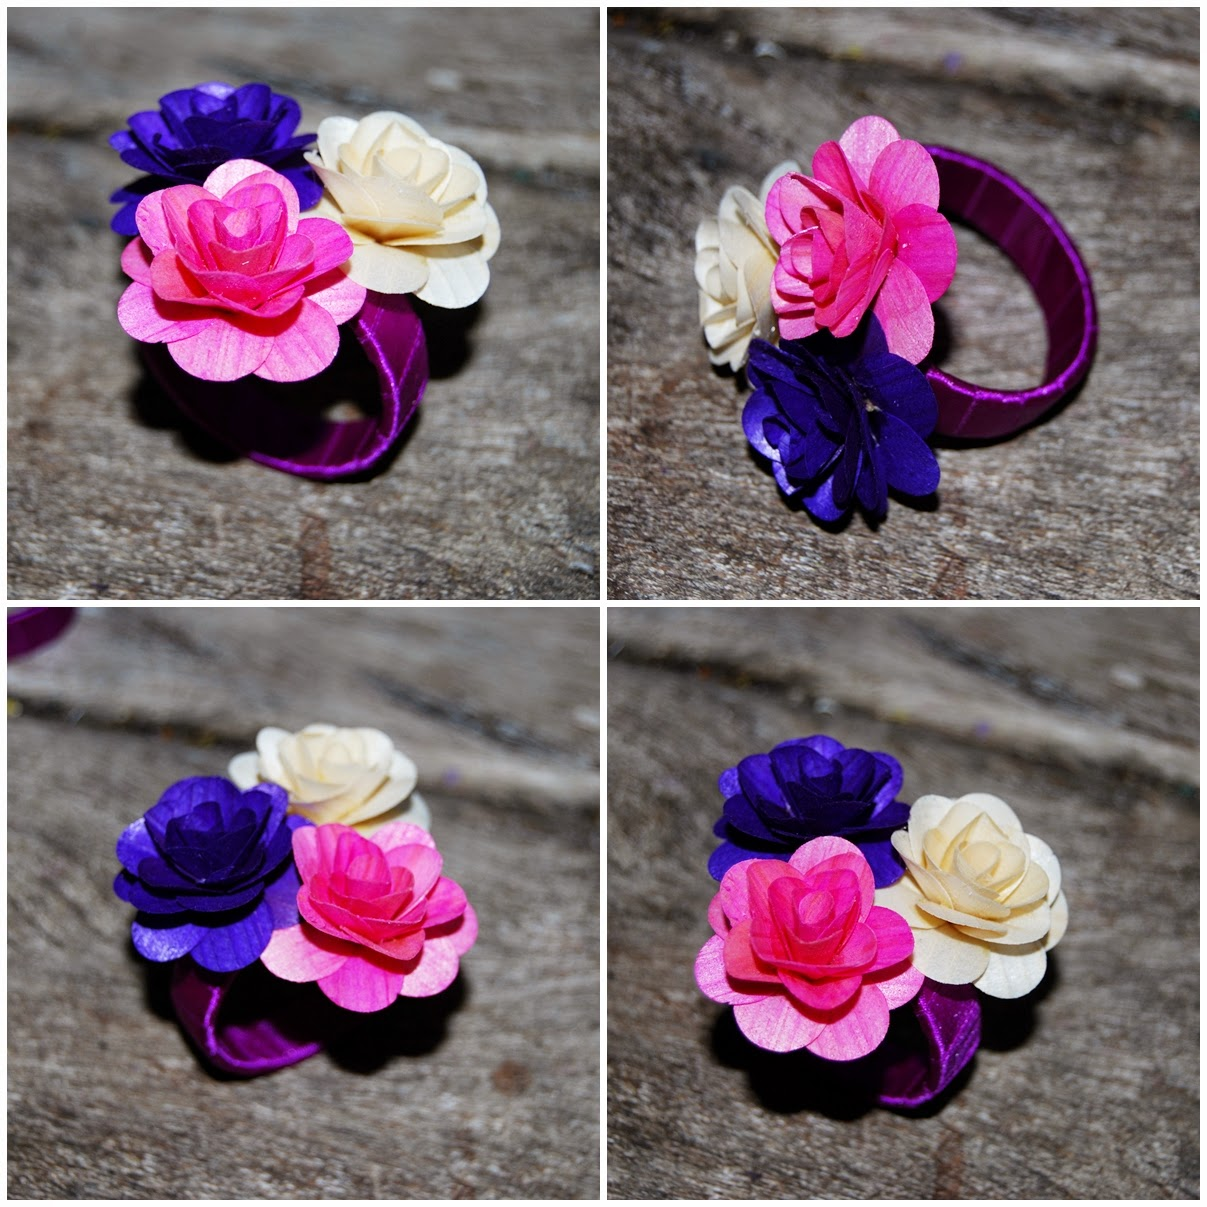 Diy How To Make Napkin Rings Using Empty Floral Tape Cores Reduce